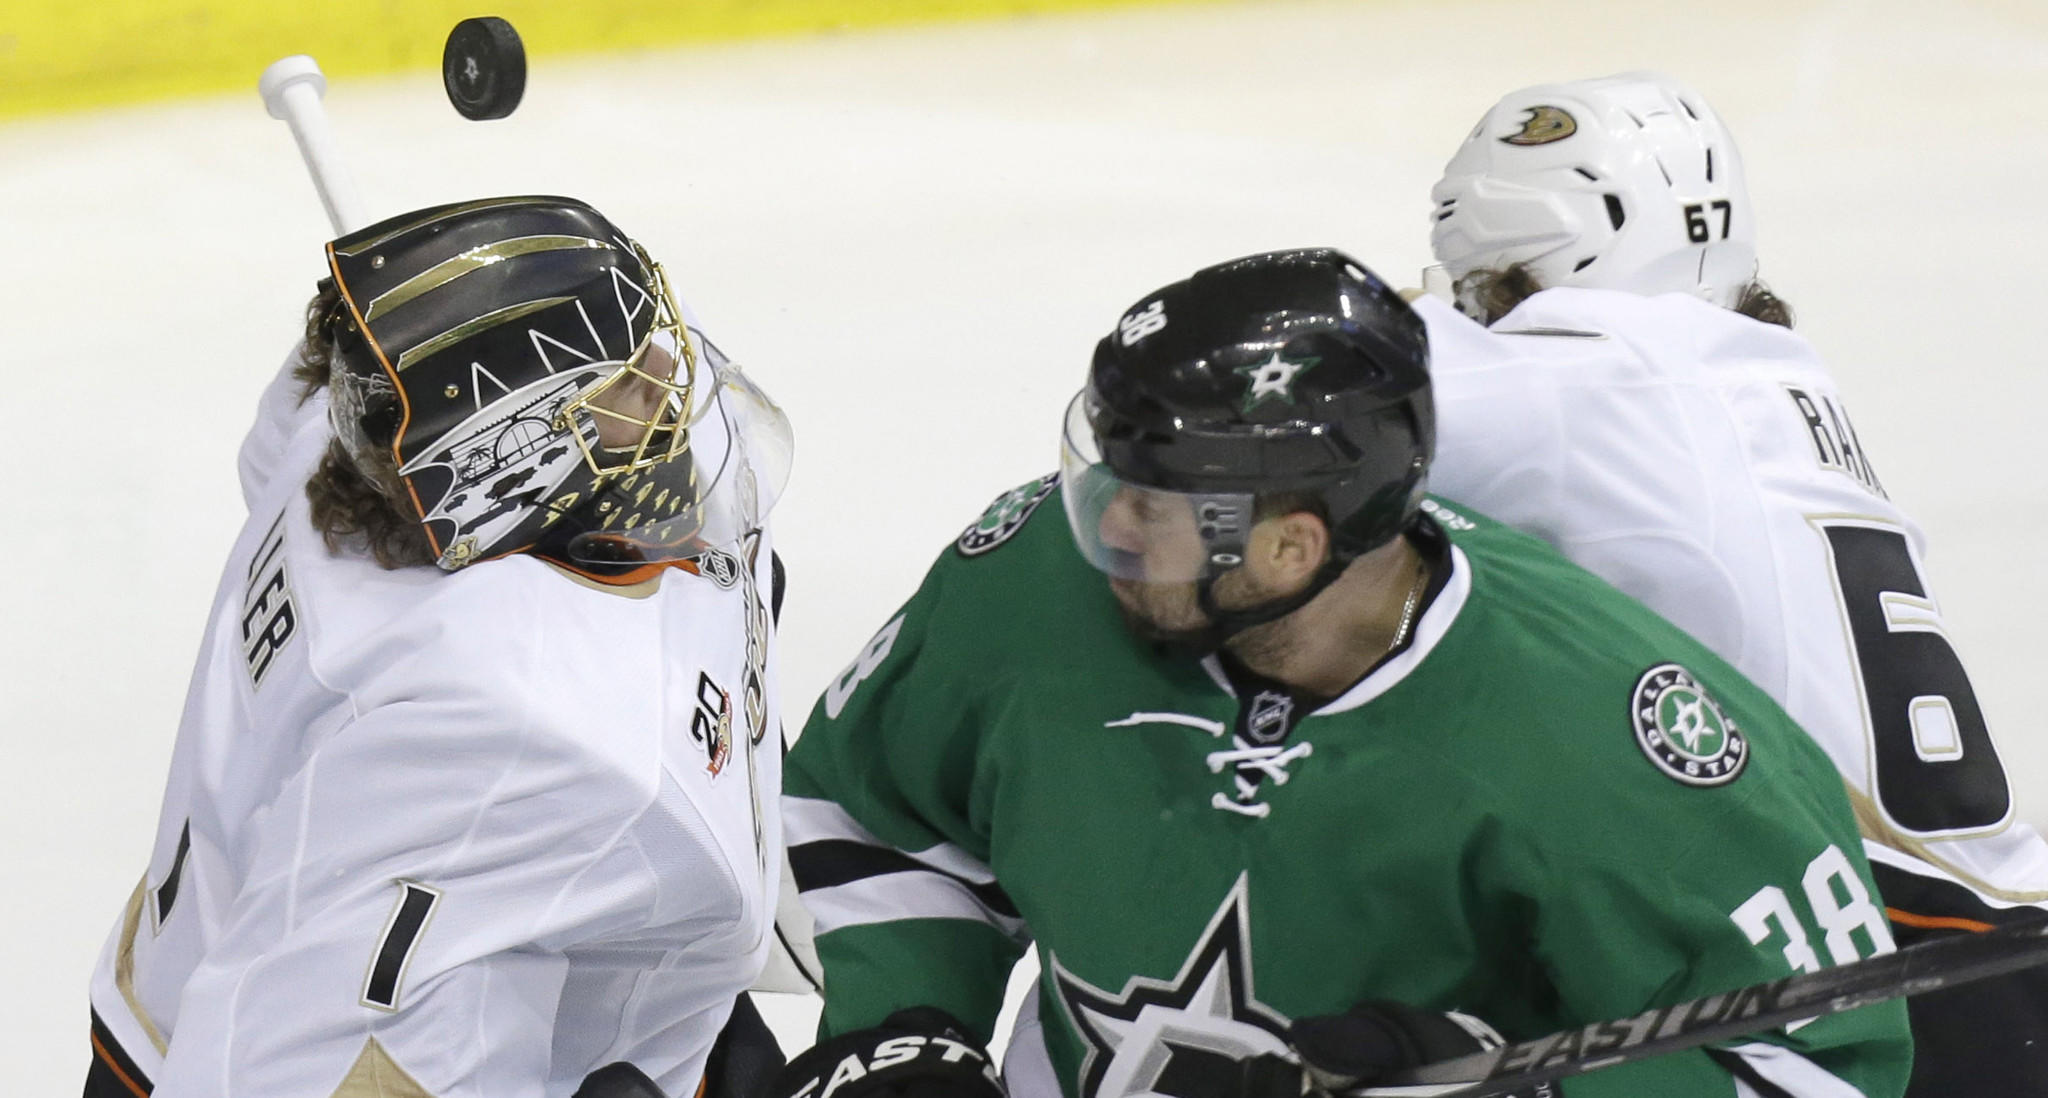 Ducks goalie Jonas Hiller makes a save in front of teammate Rickard Rakell, right, and Dallas Stars forward Vernon Fiddler during the third period of the Ducks' series-clinching 5-4 victory in Game 6 of the Western Conference quarterfinals on Sunday.